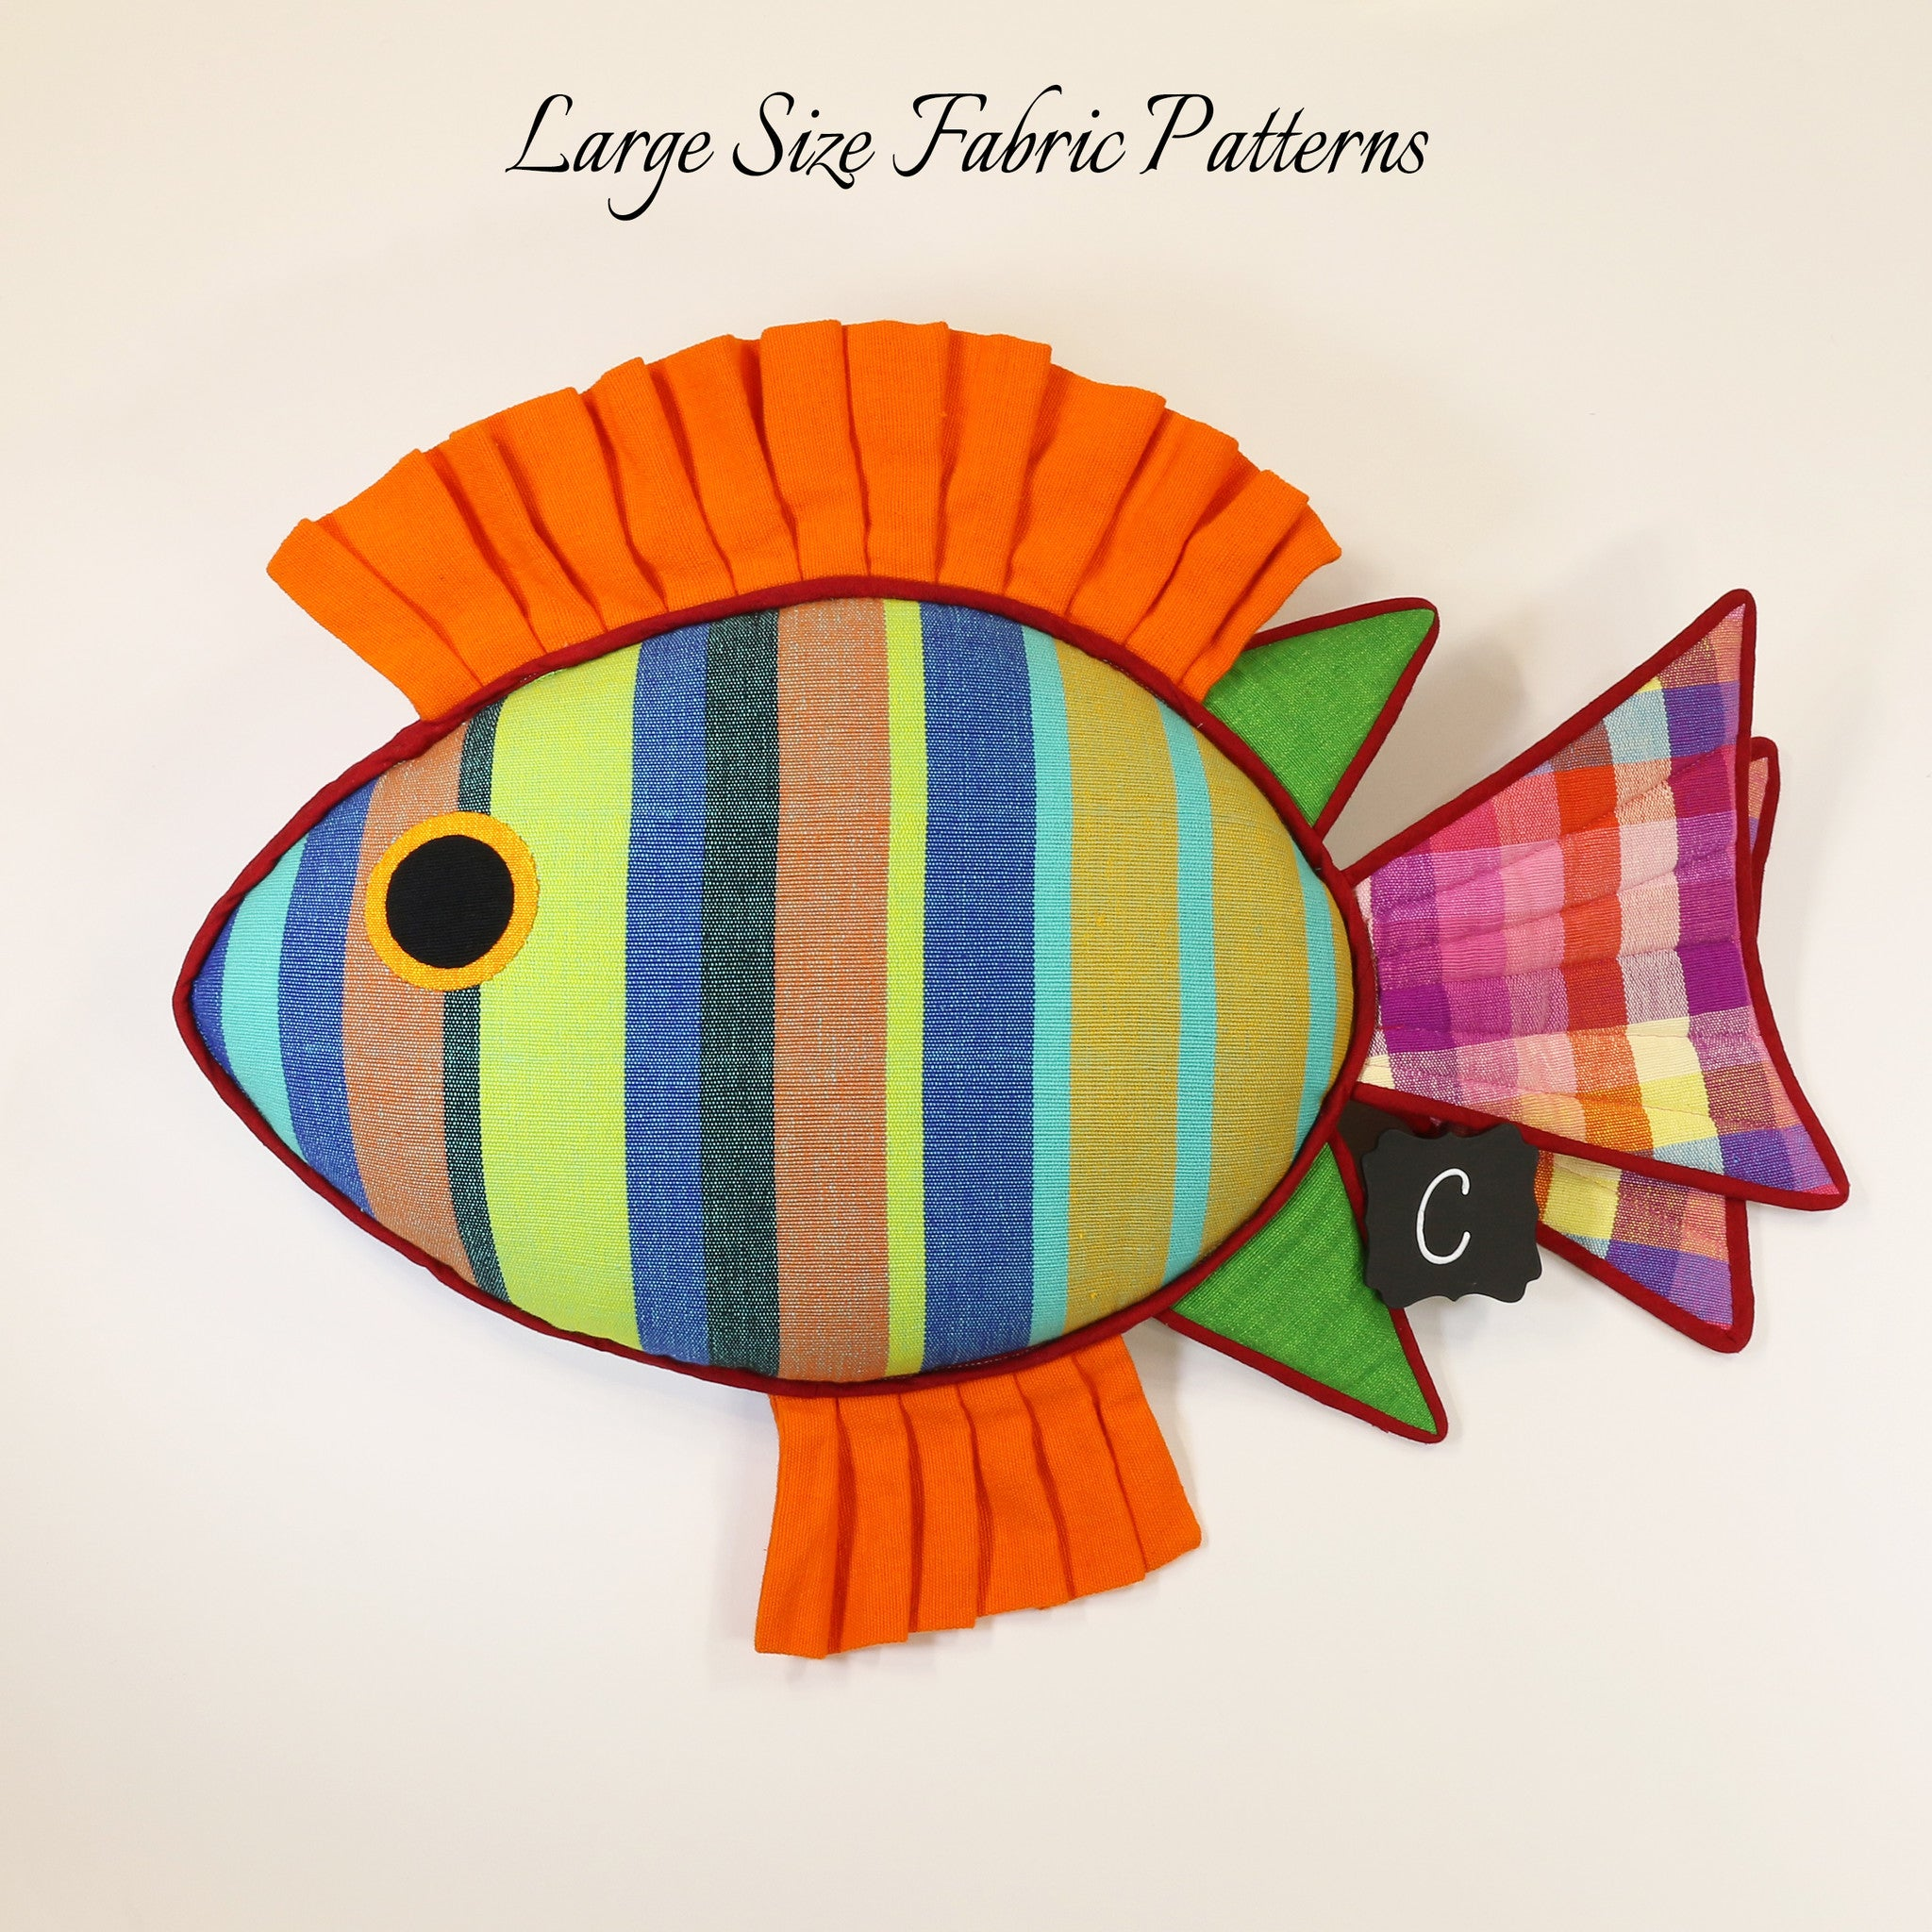 Reagan, the Rabbit Fish – large size fabric patterns shown